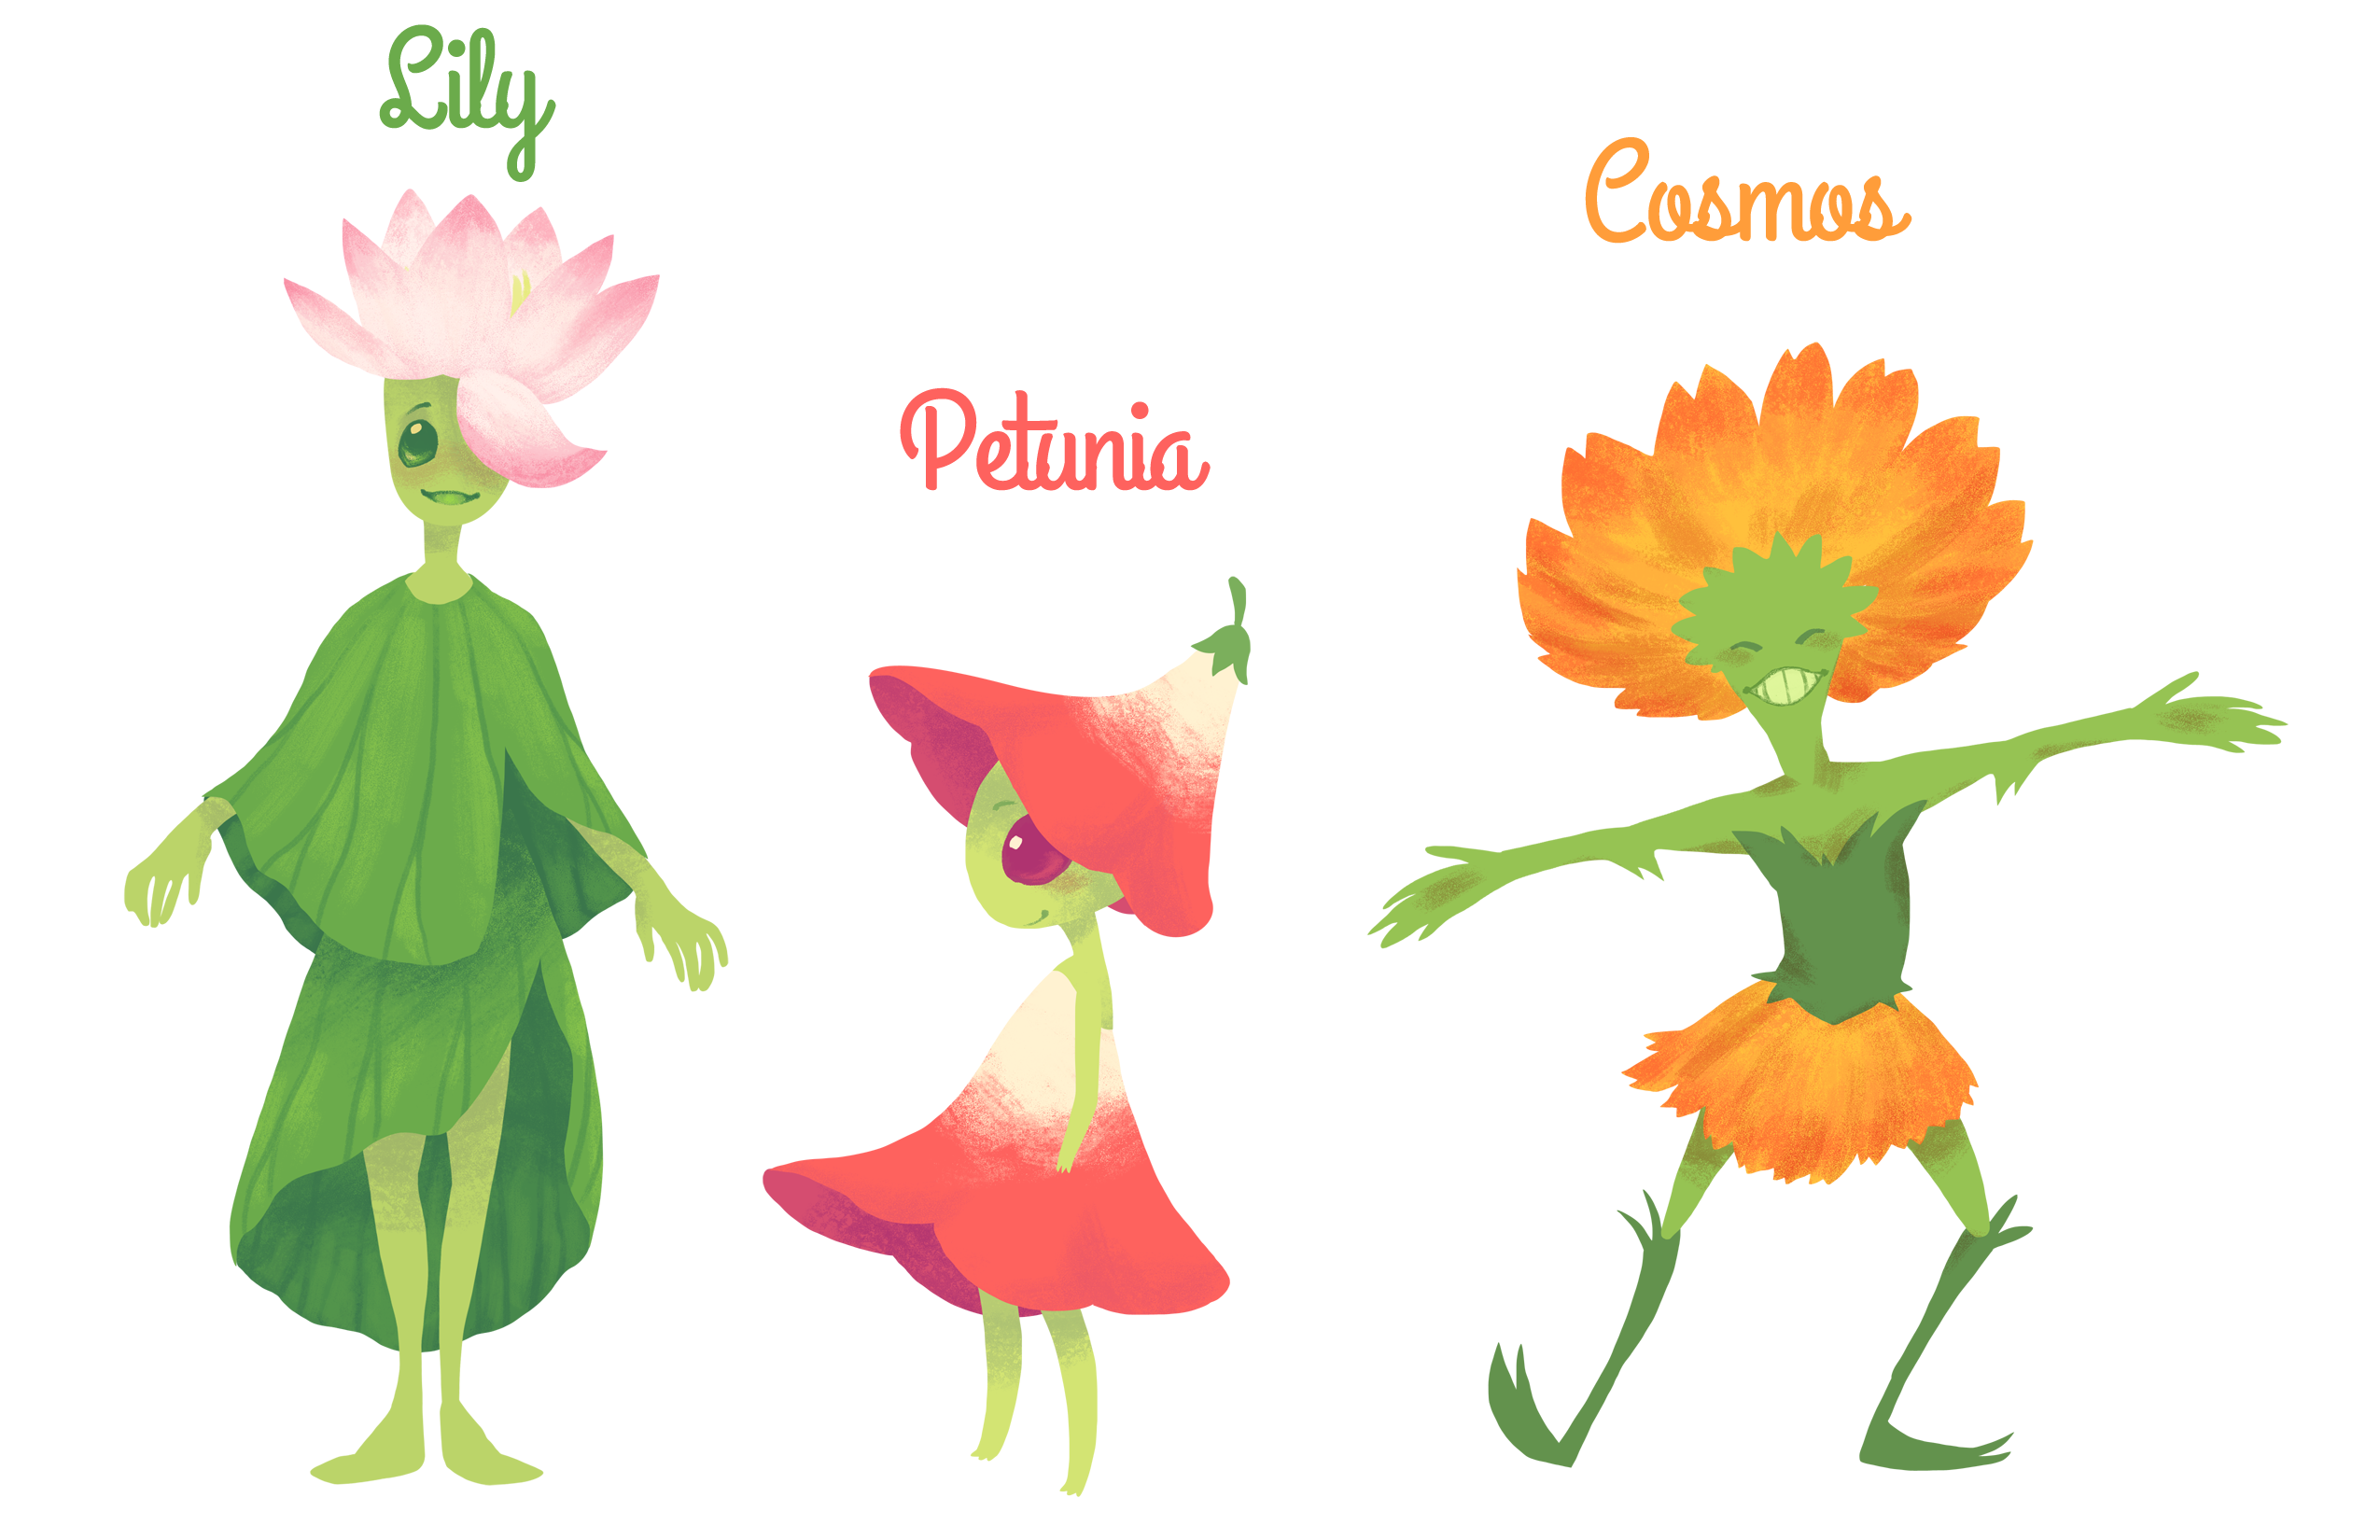 The Flower Folk